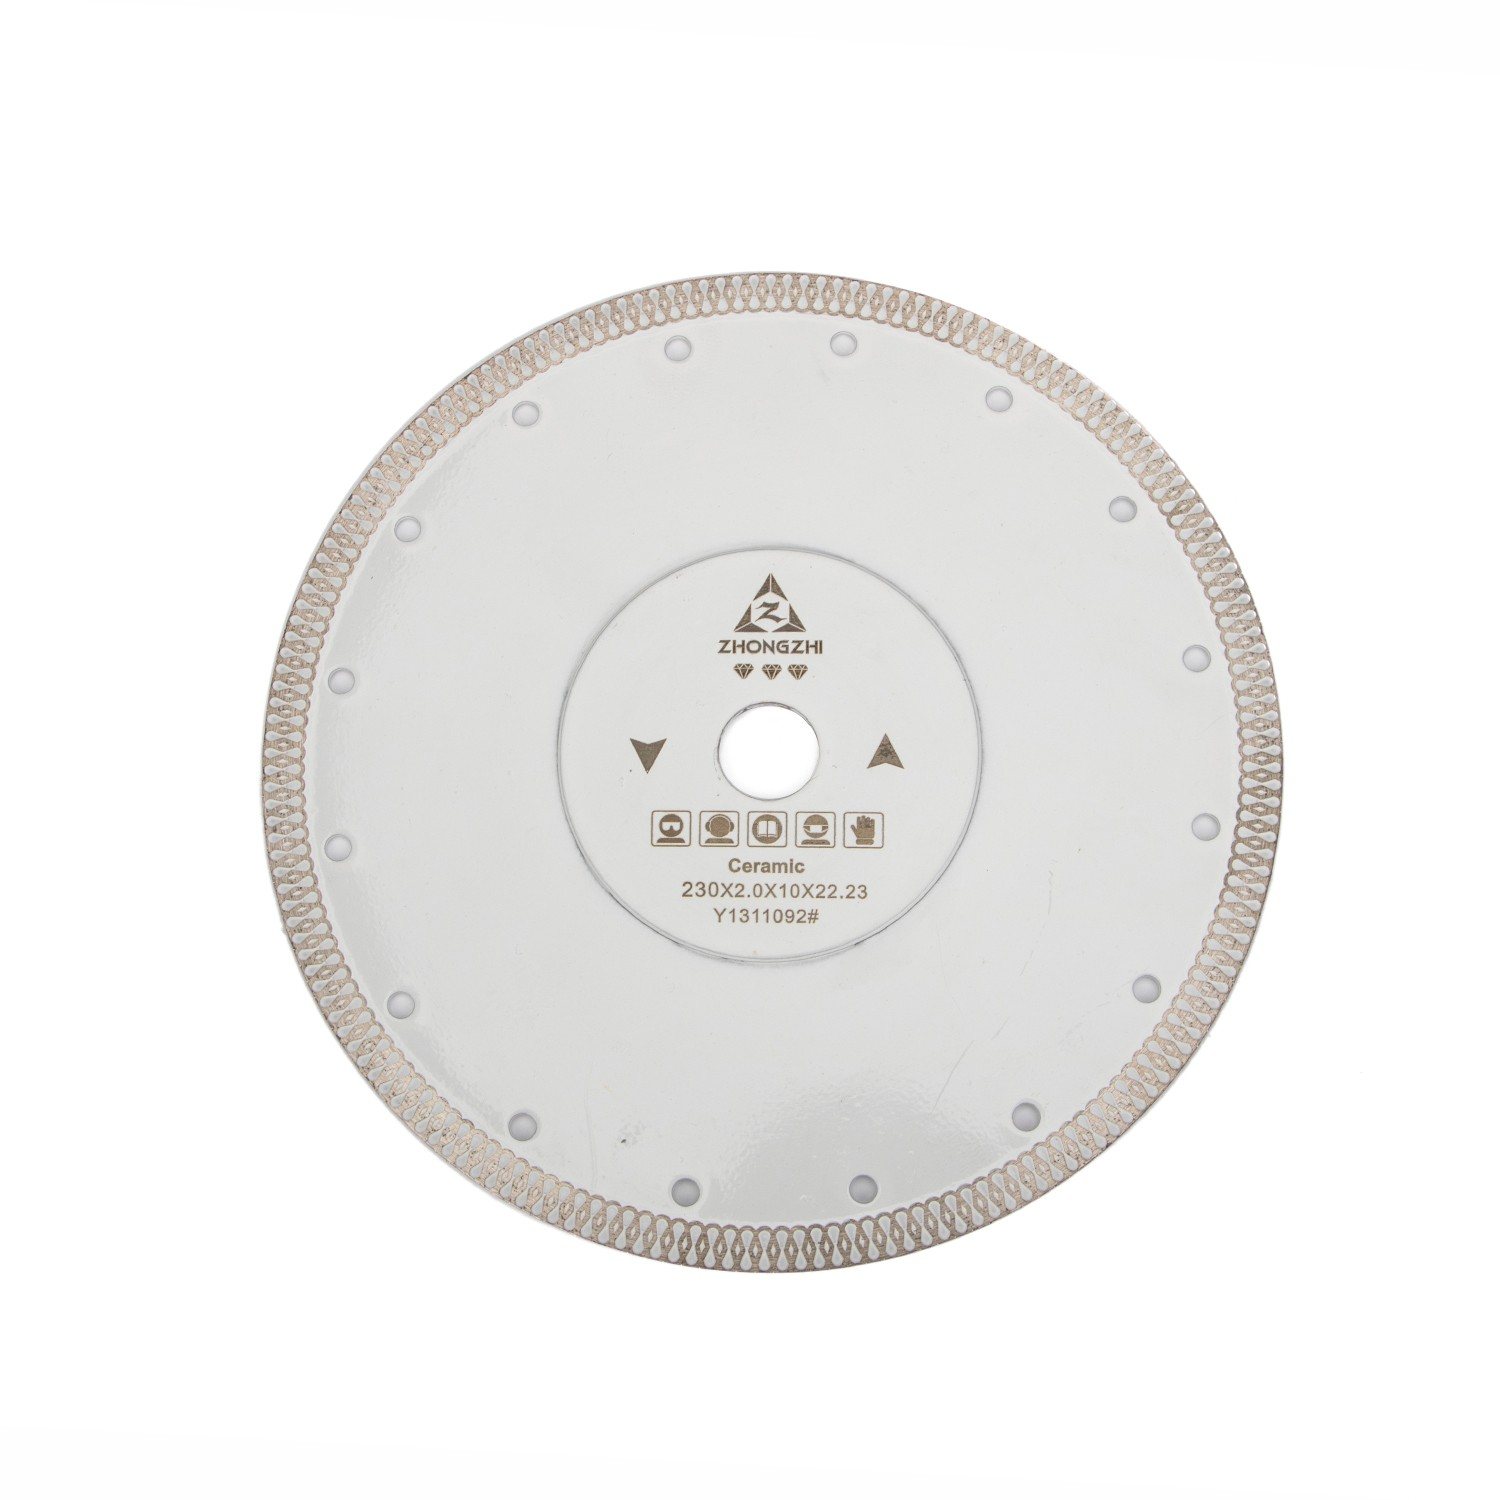 Tiles or Porcelain cutting in Clean and Chip Free Fish Scale Type Diamond Blade